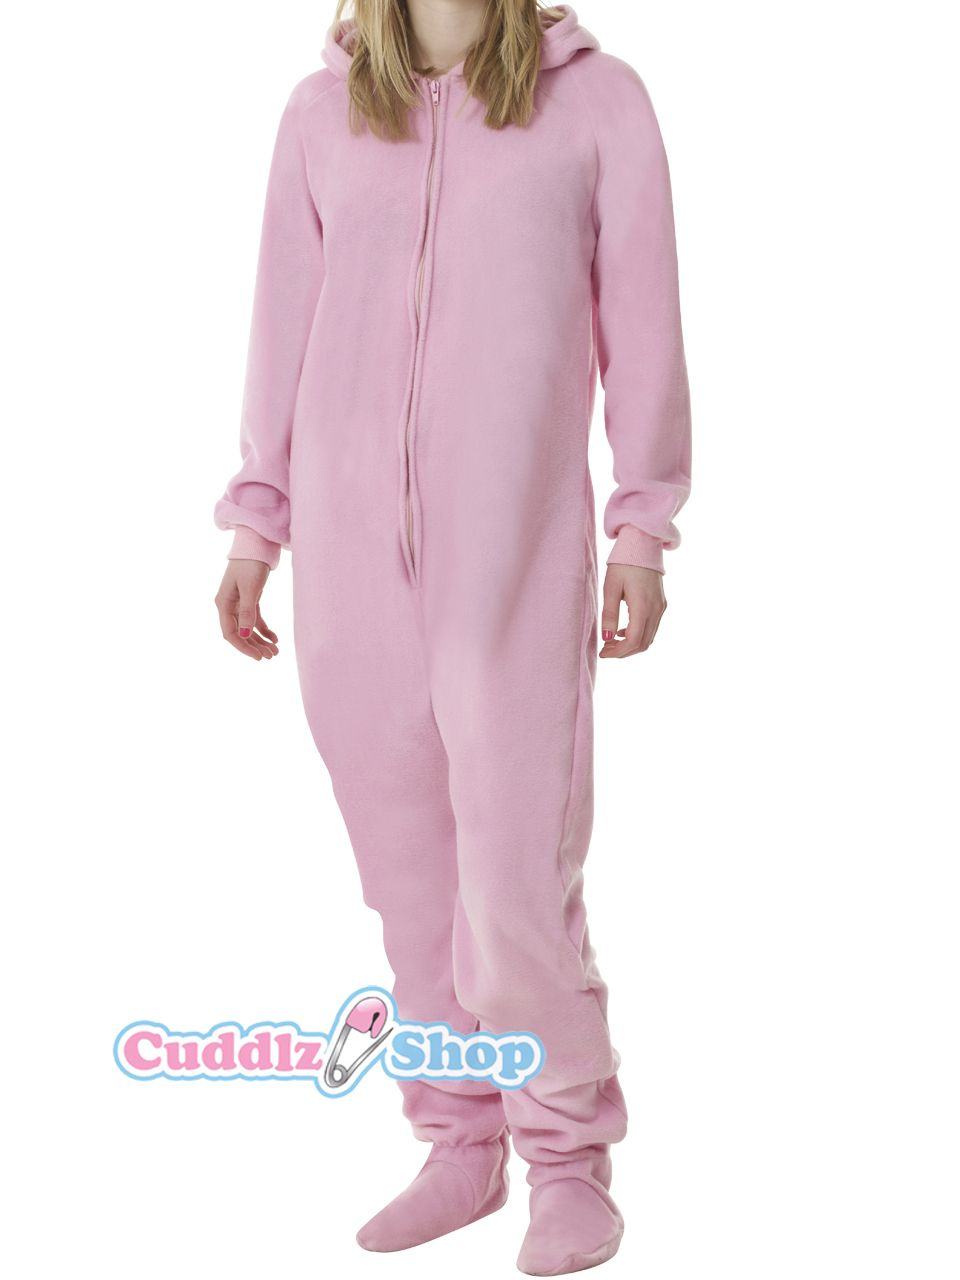 2cd0e1fe5 Pink onesie for adults with feet adult baby footed sleeper abdl ...